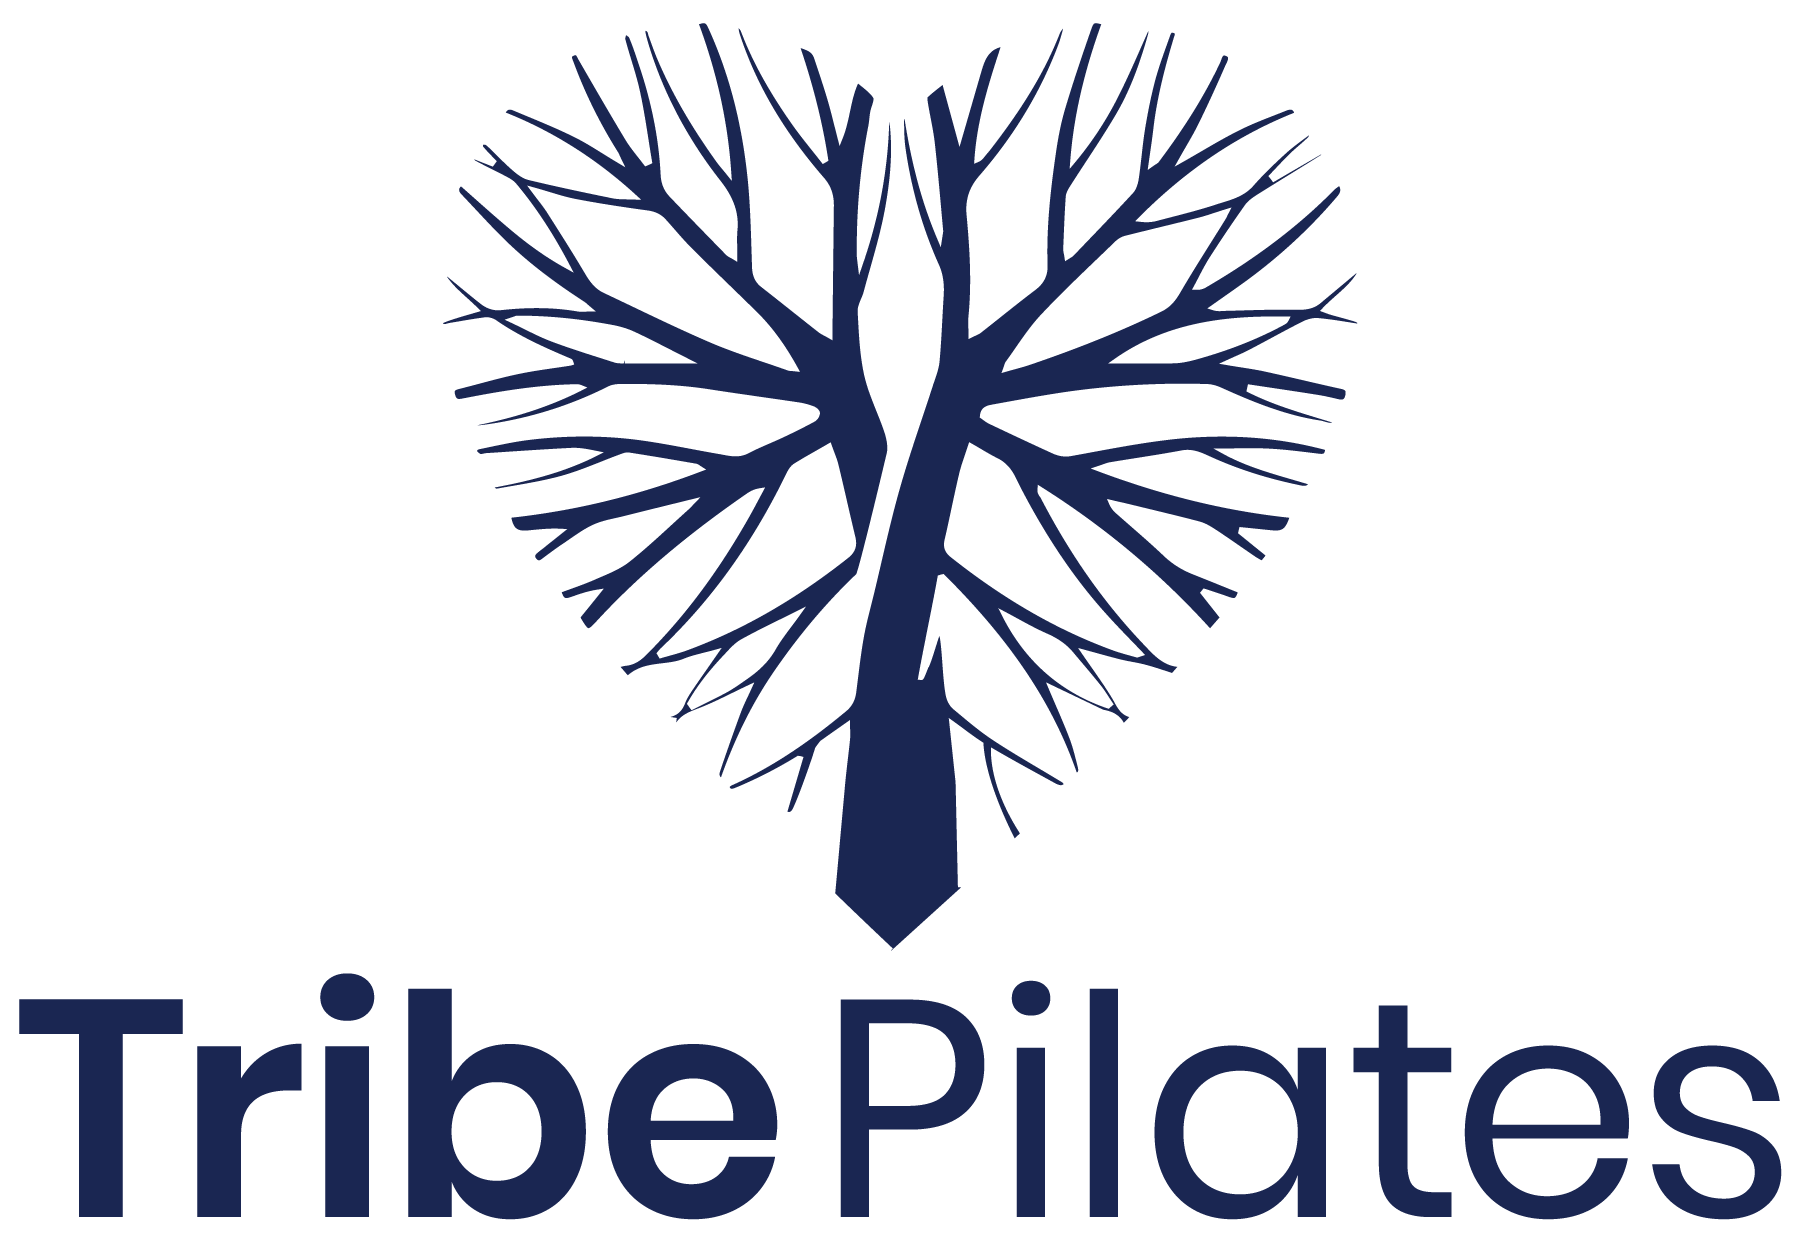 Tribe Pilates, a Top Pilates Studio in Santa Monica, CA is Voted the Most Loved New Business in the Santa Monica Area